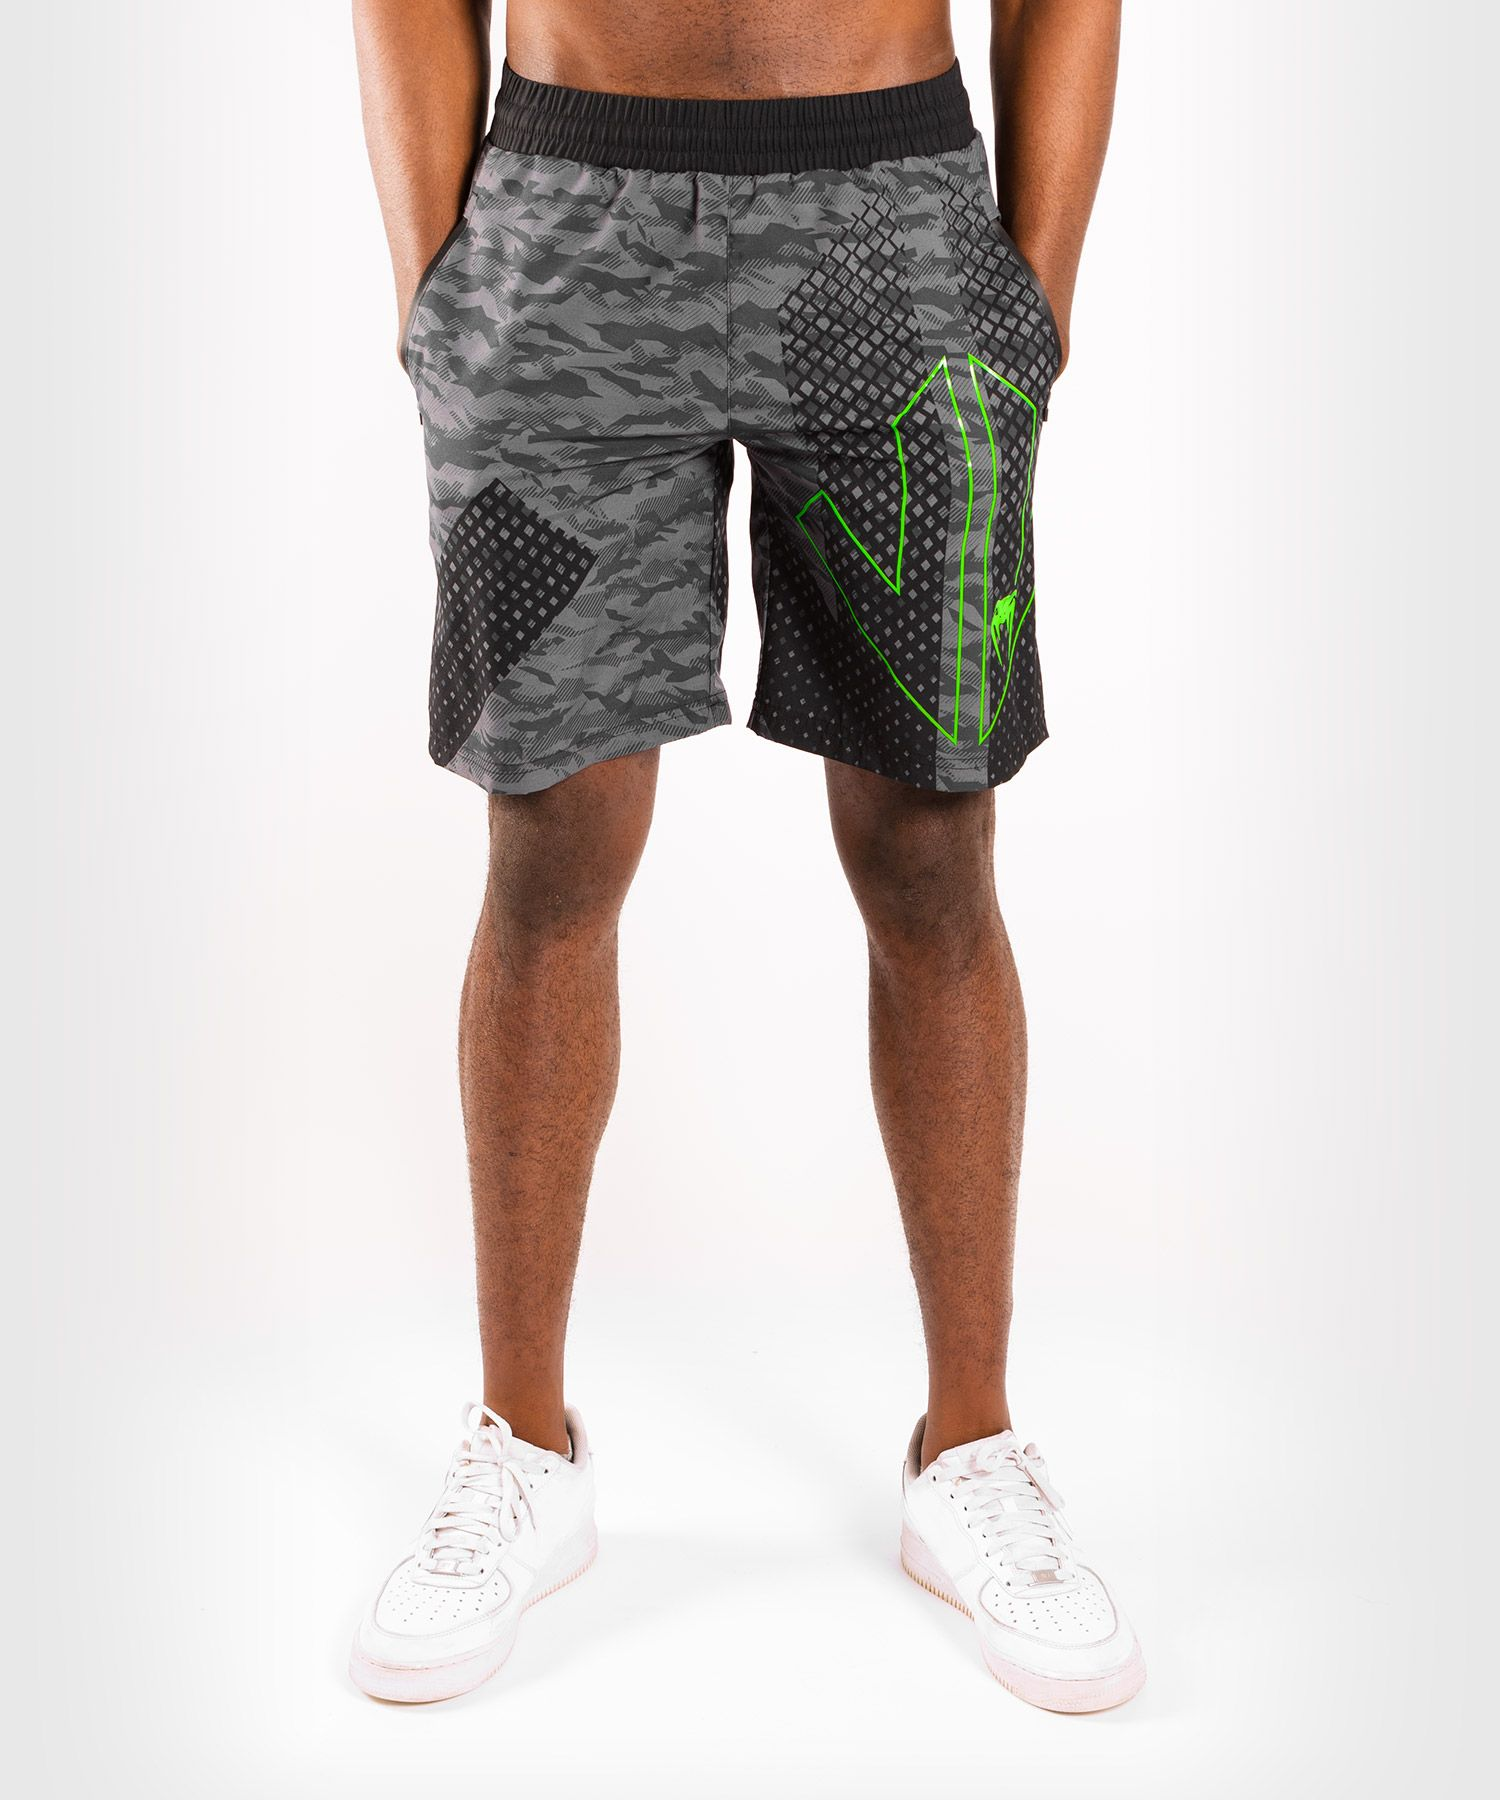 Short de Sport Venum Arrow Edition Loma - Dark Camo